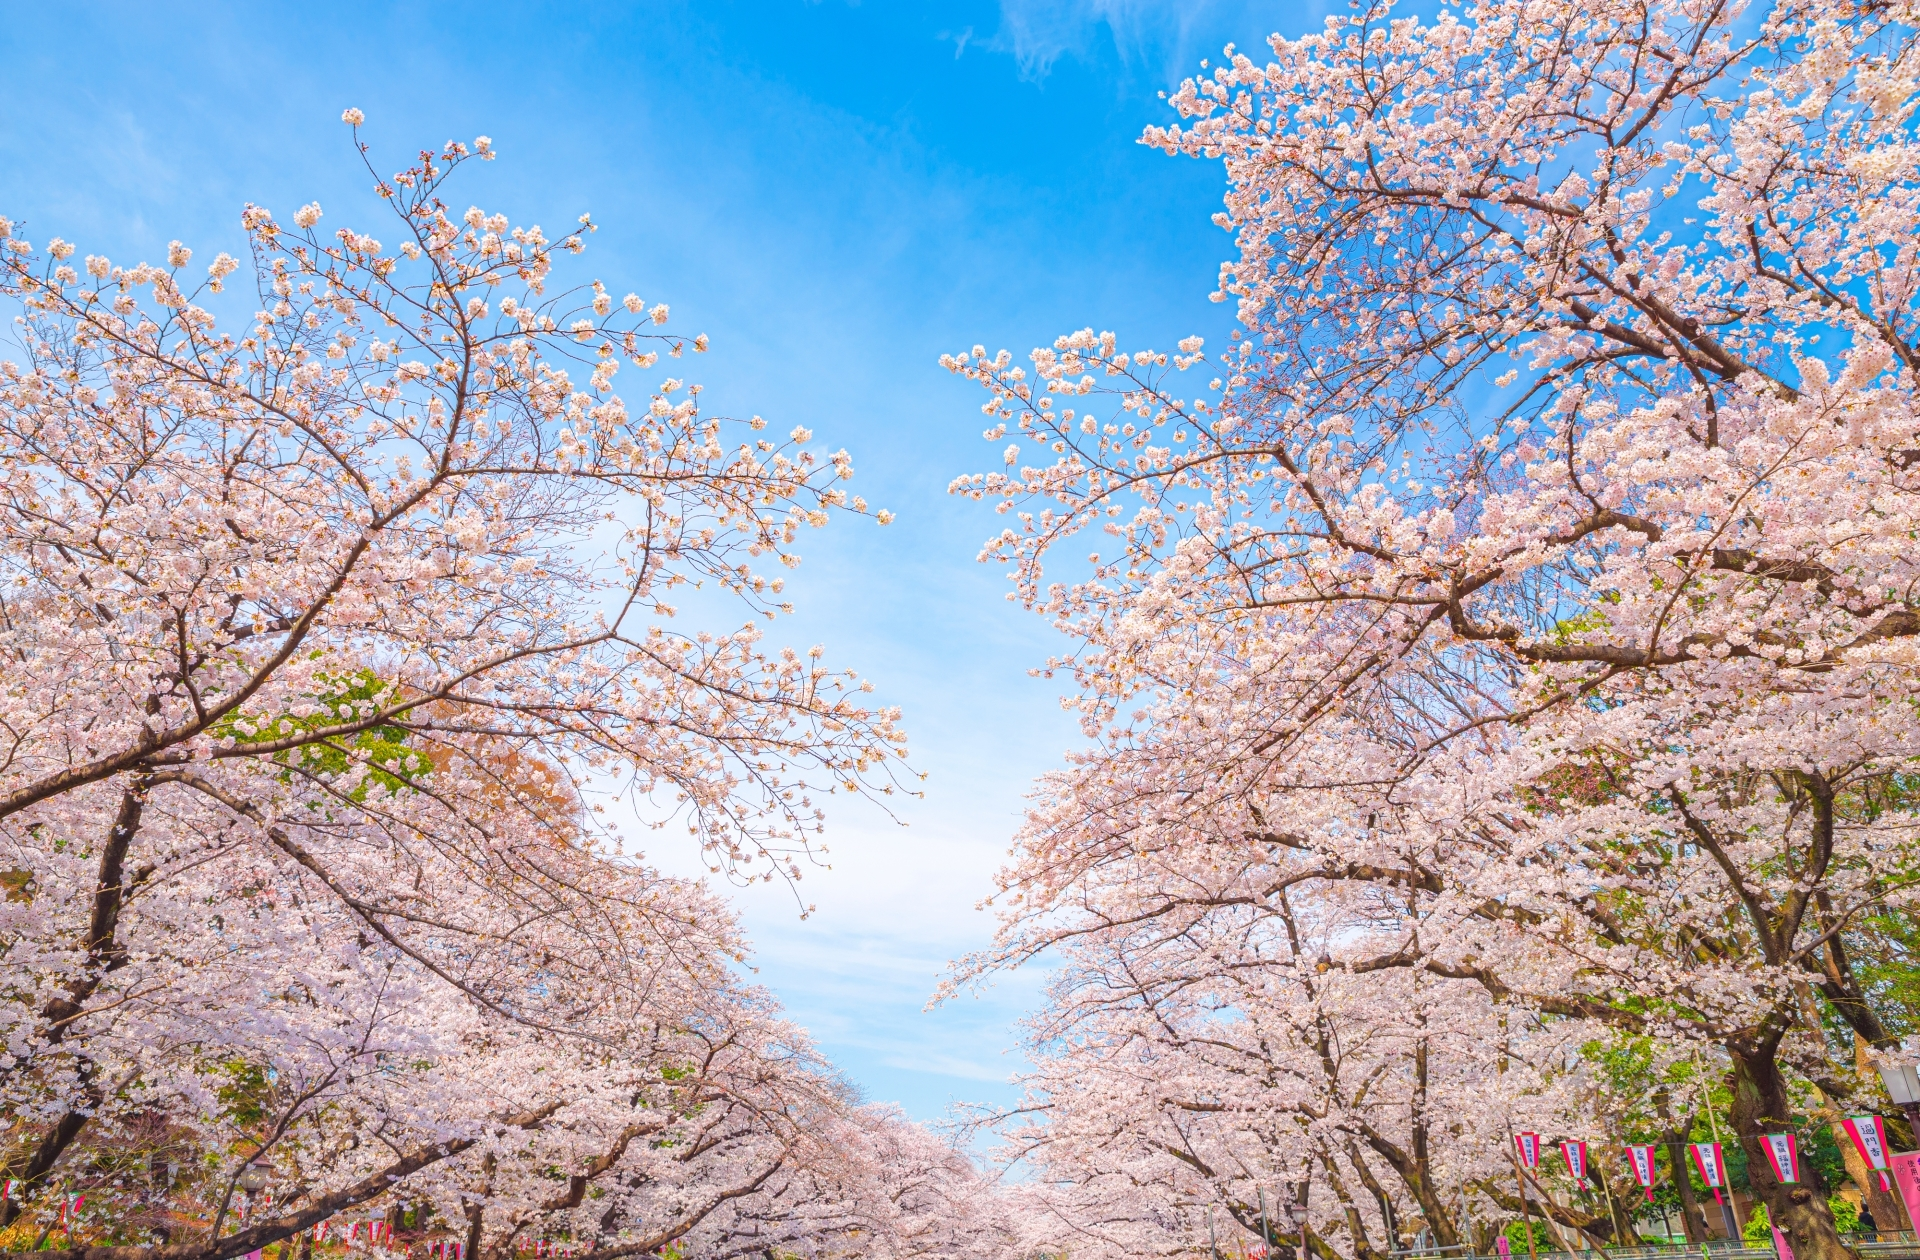 Can You And Should You Go See The Cherry Blossoms In Tokyo This Year